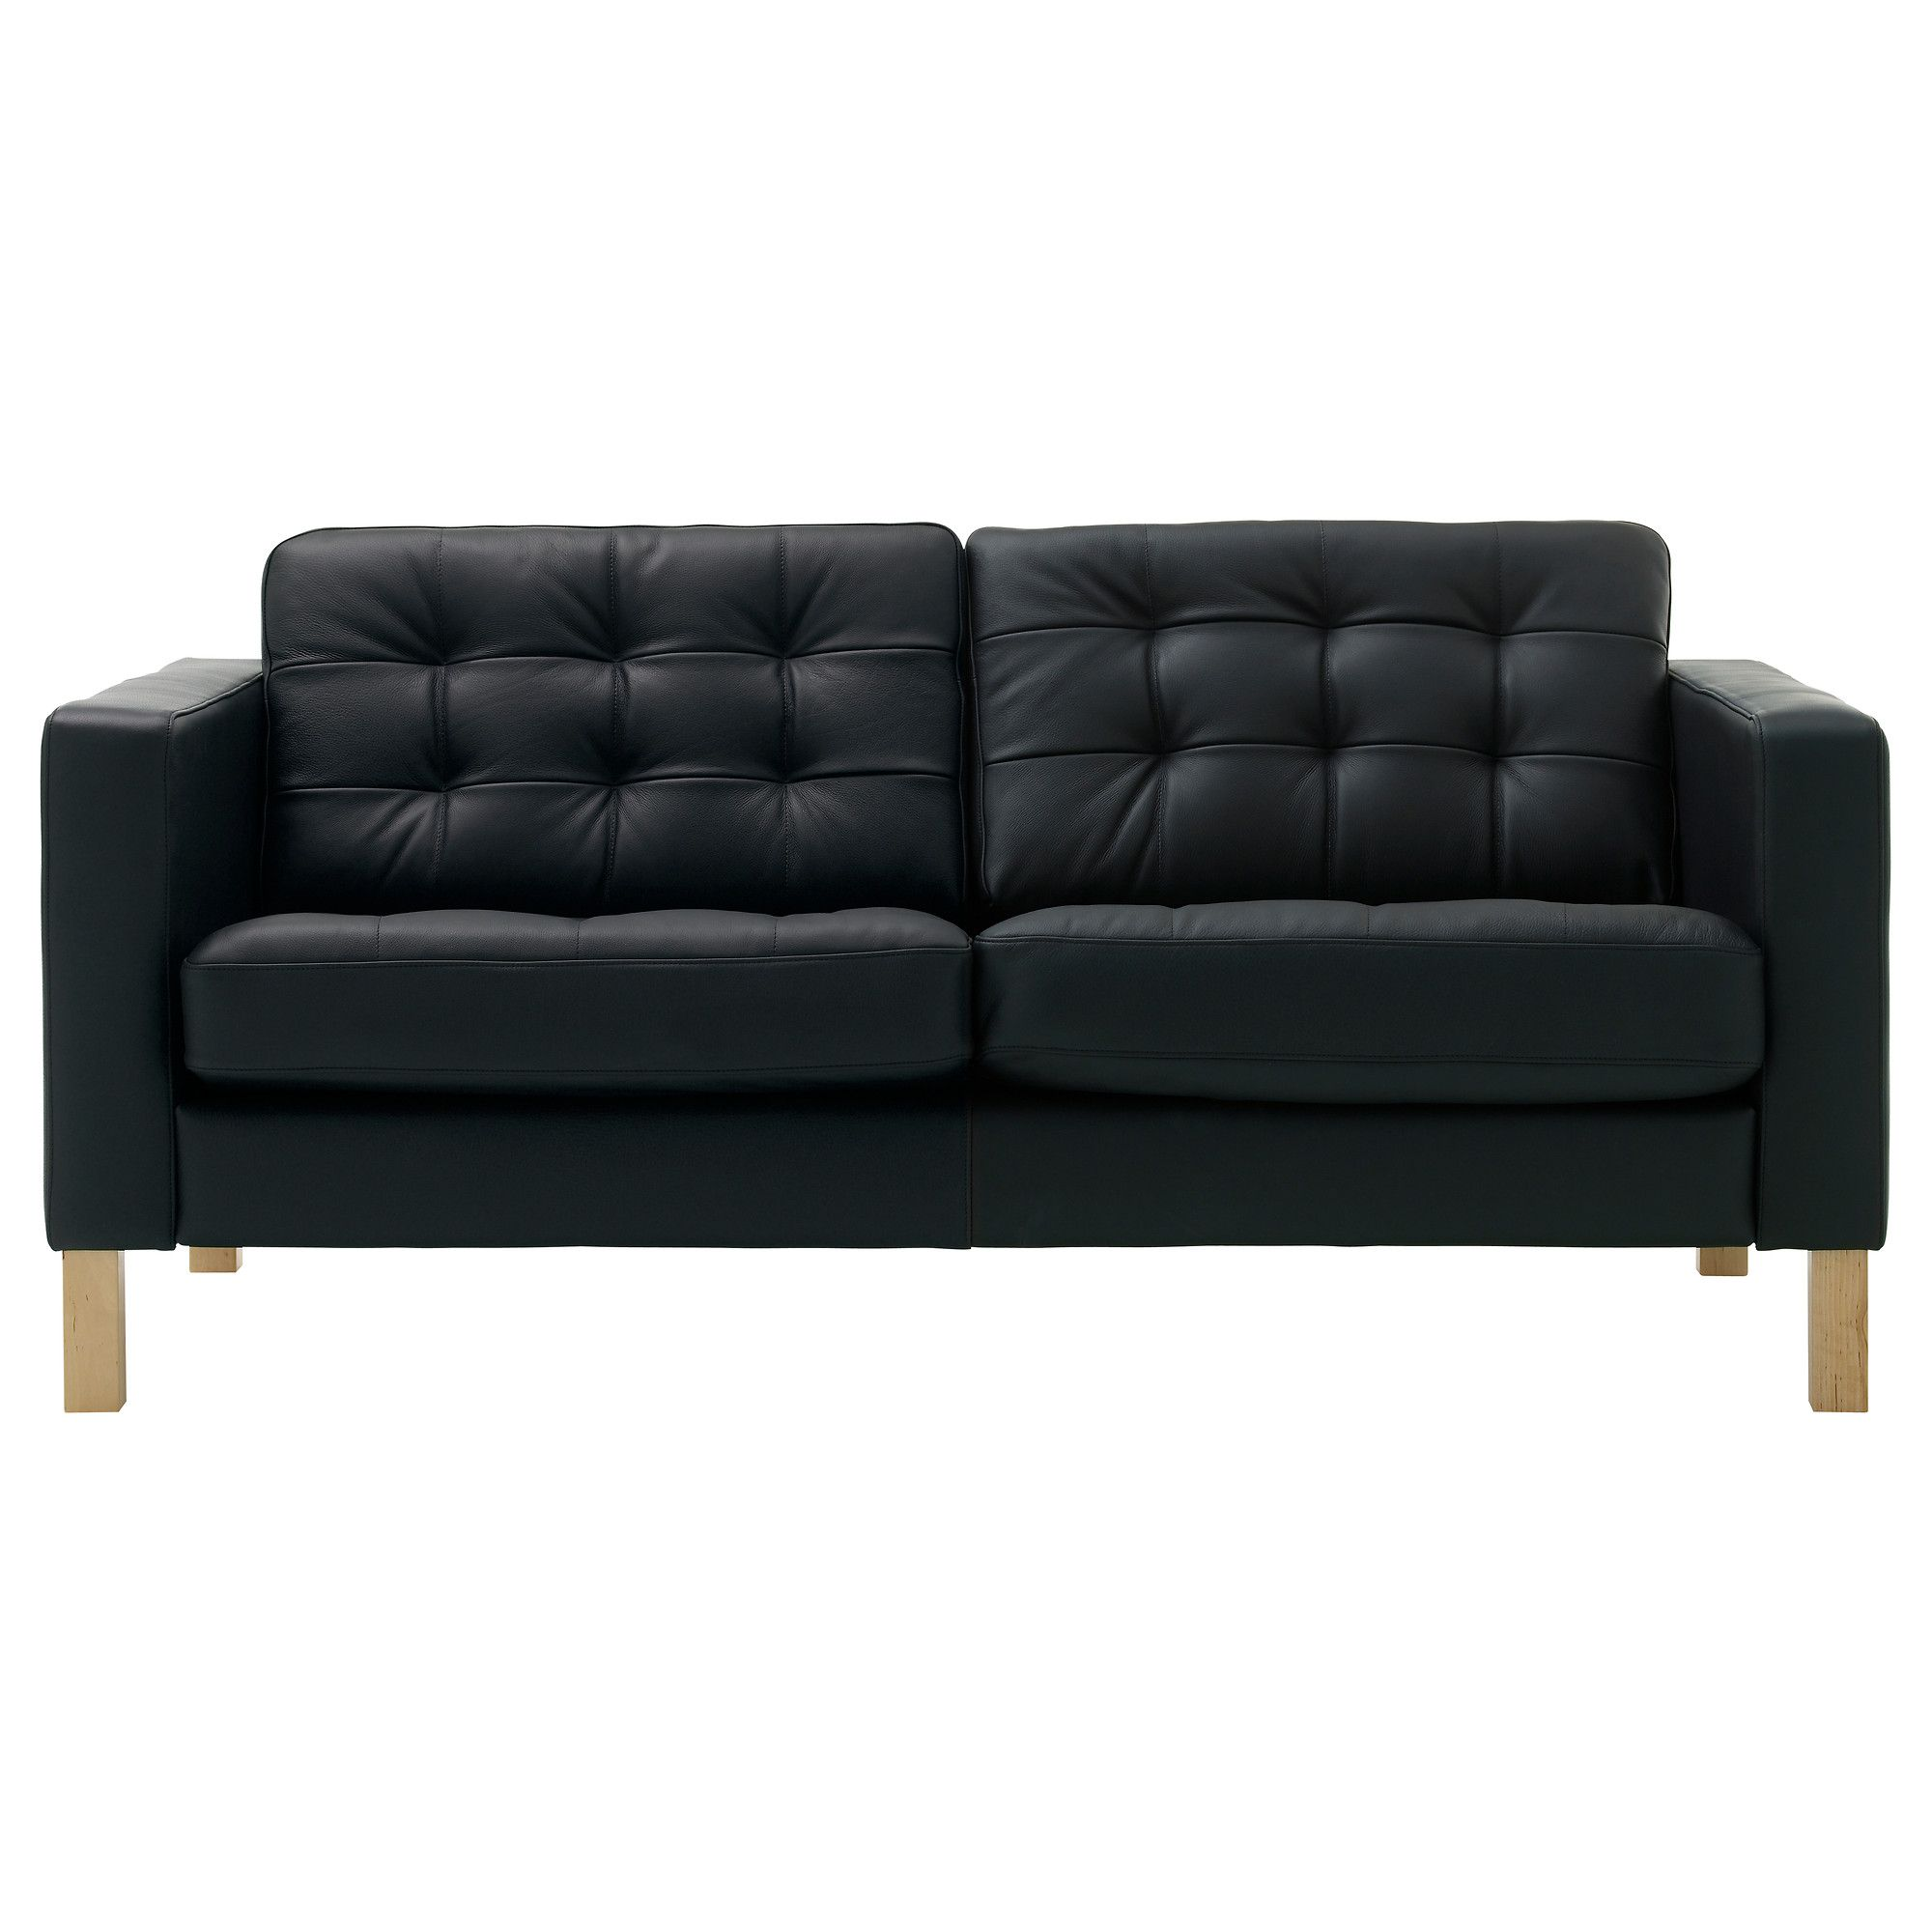 leather sofas leather sofa couch